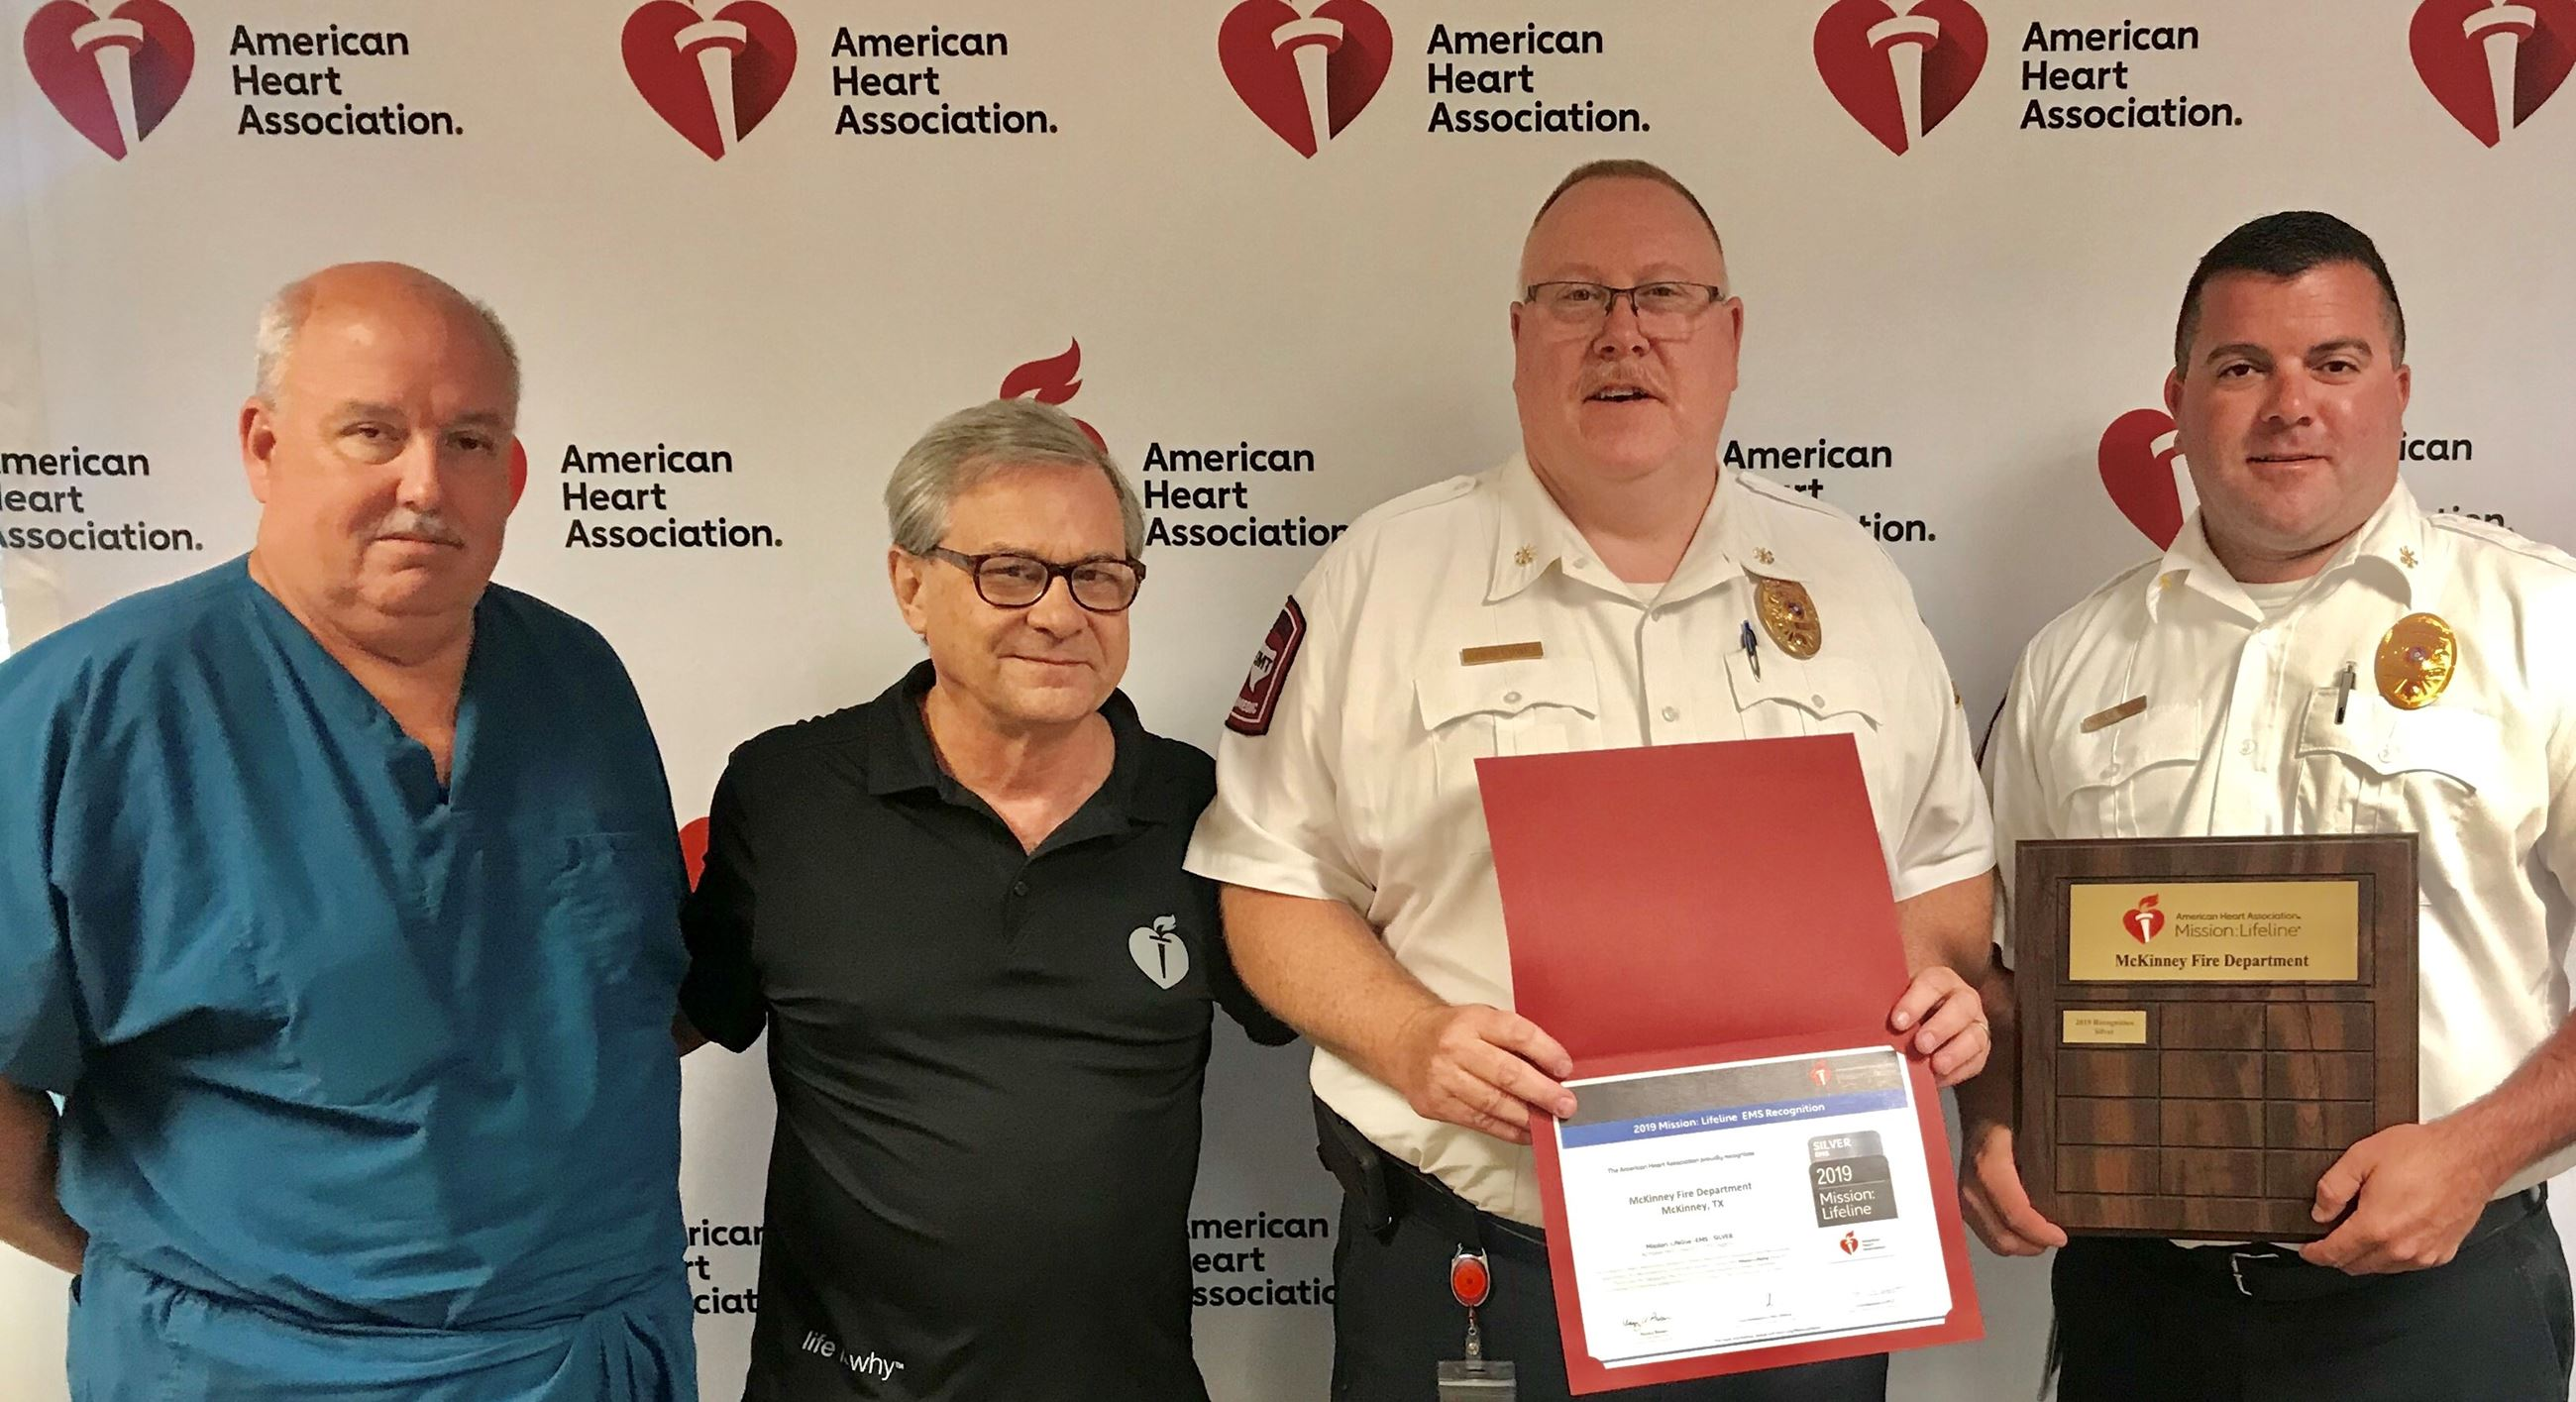 Fire Department Honored for treatment of heart attack patients